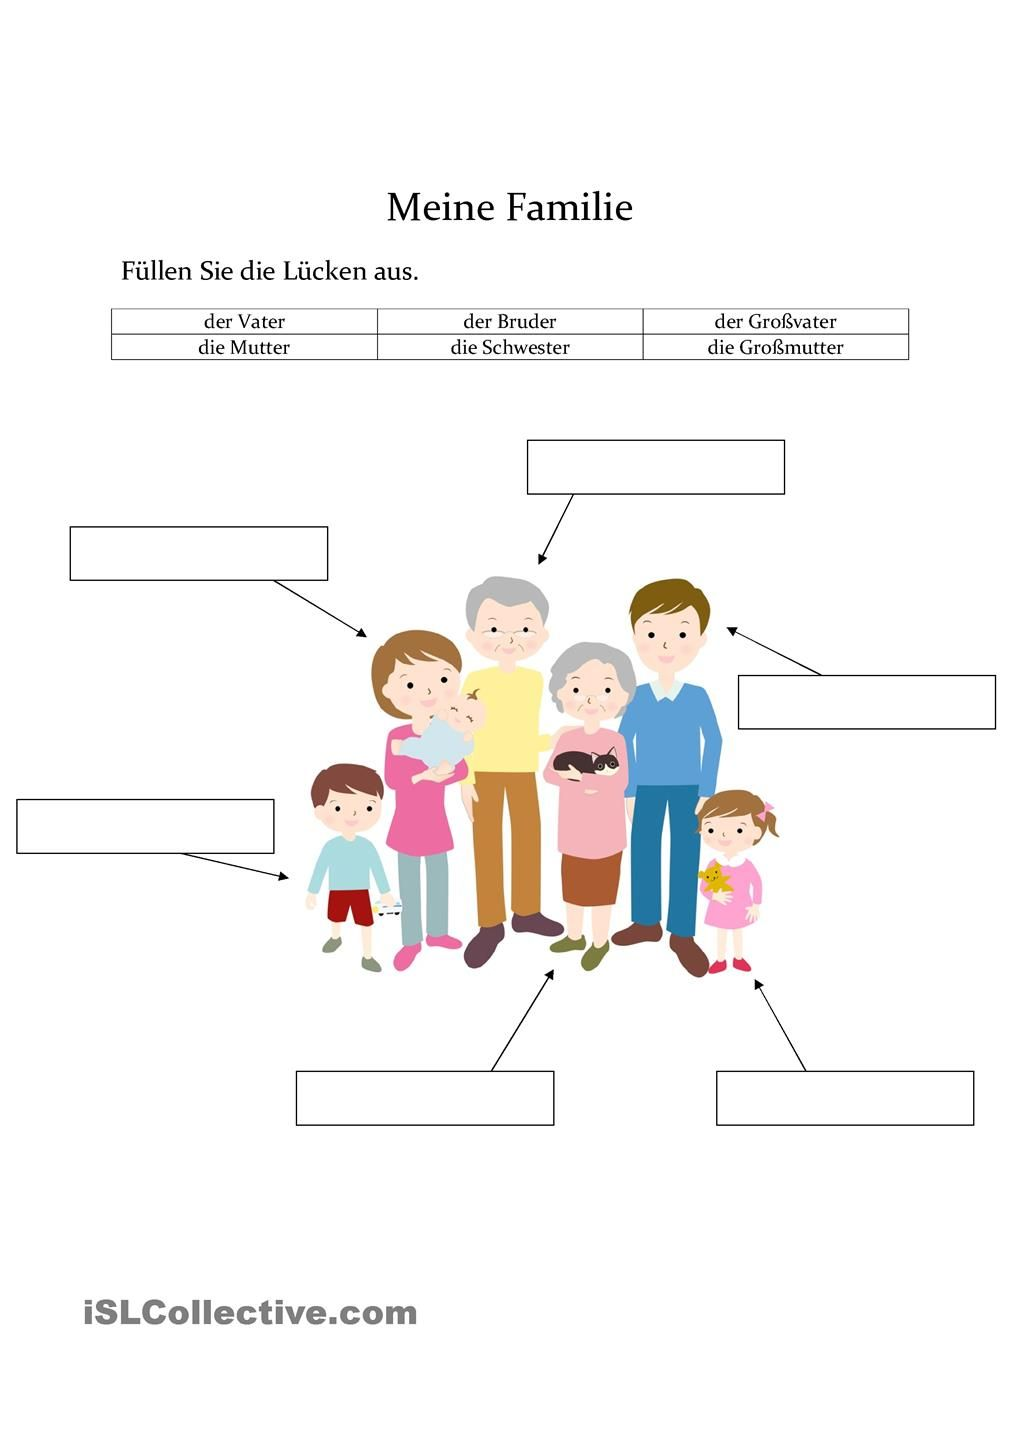 Meine Familie | Pinterest | German, German language and Language